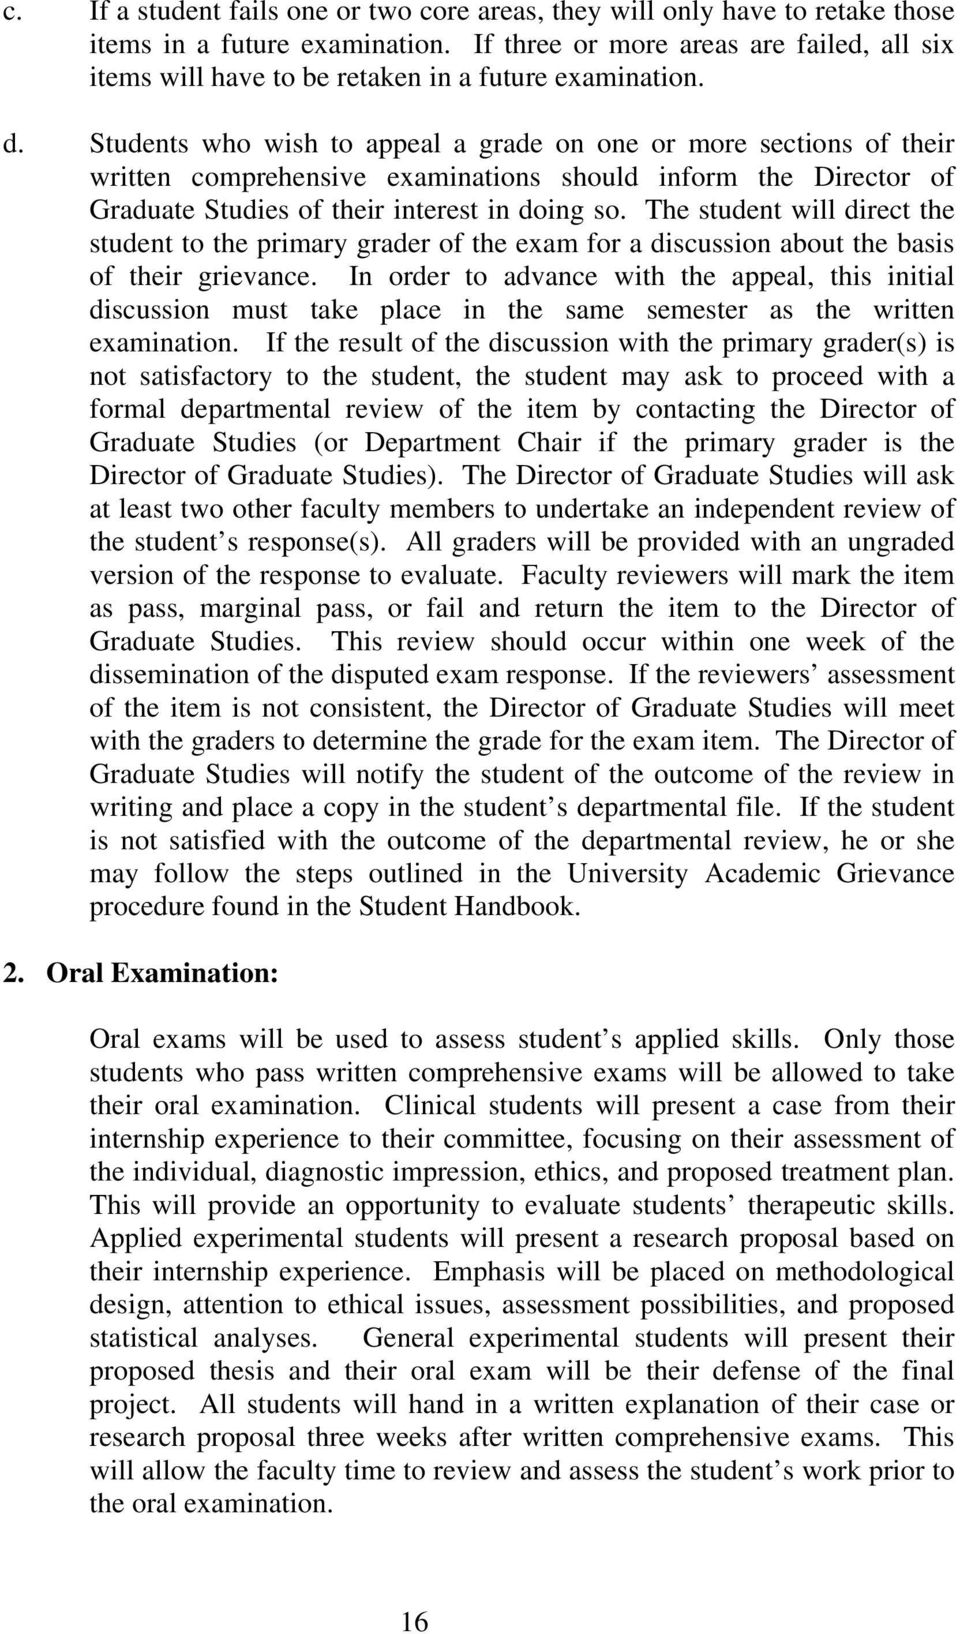 Students who wish to appeal a grade on one or more sections of their written comprehensive examinations should inform the Director of Graduate Studies of their interest in doing so.